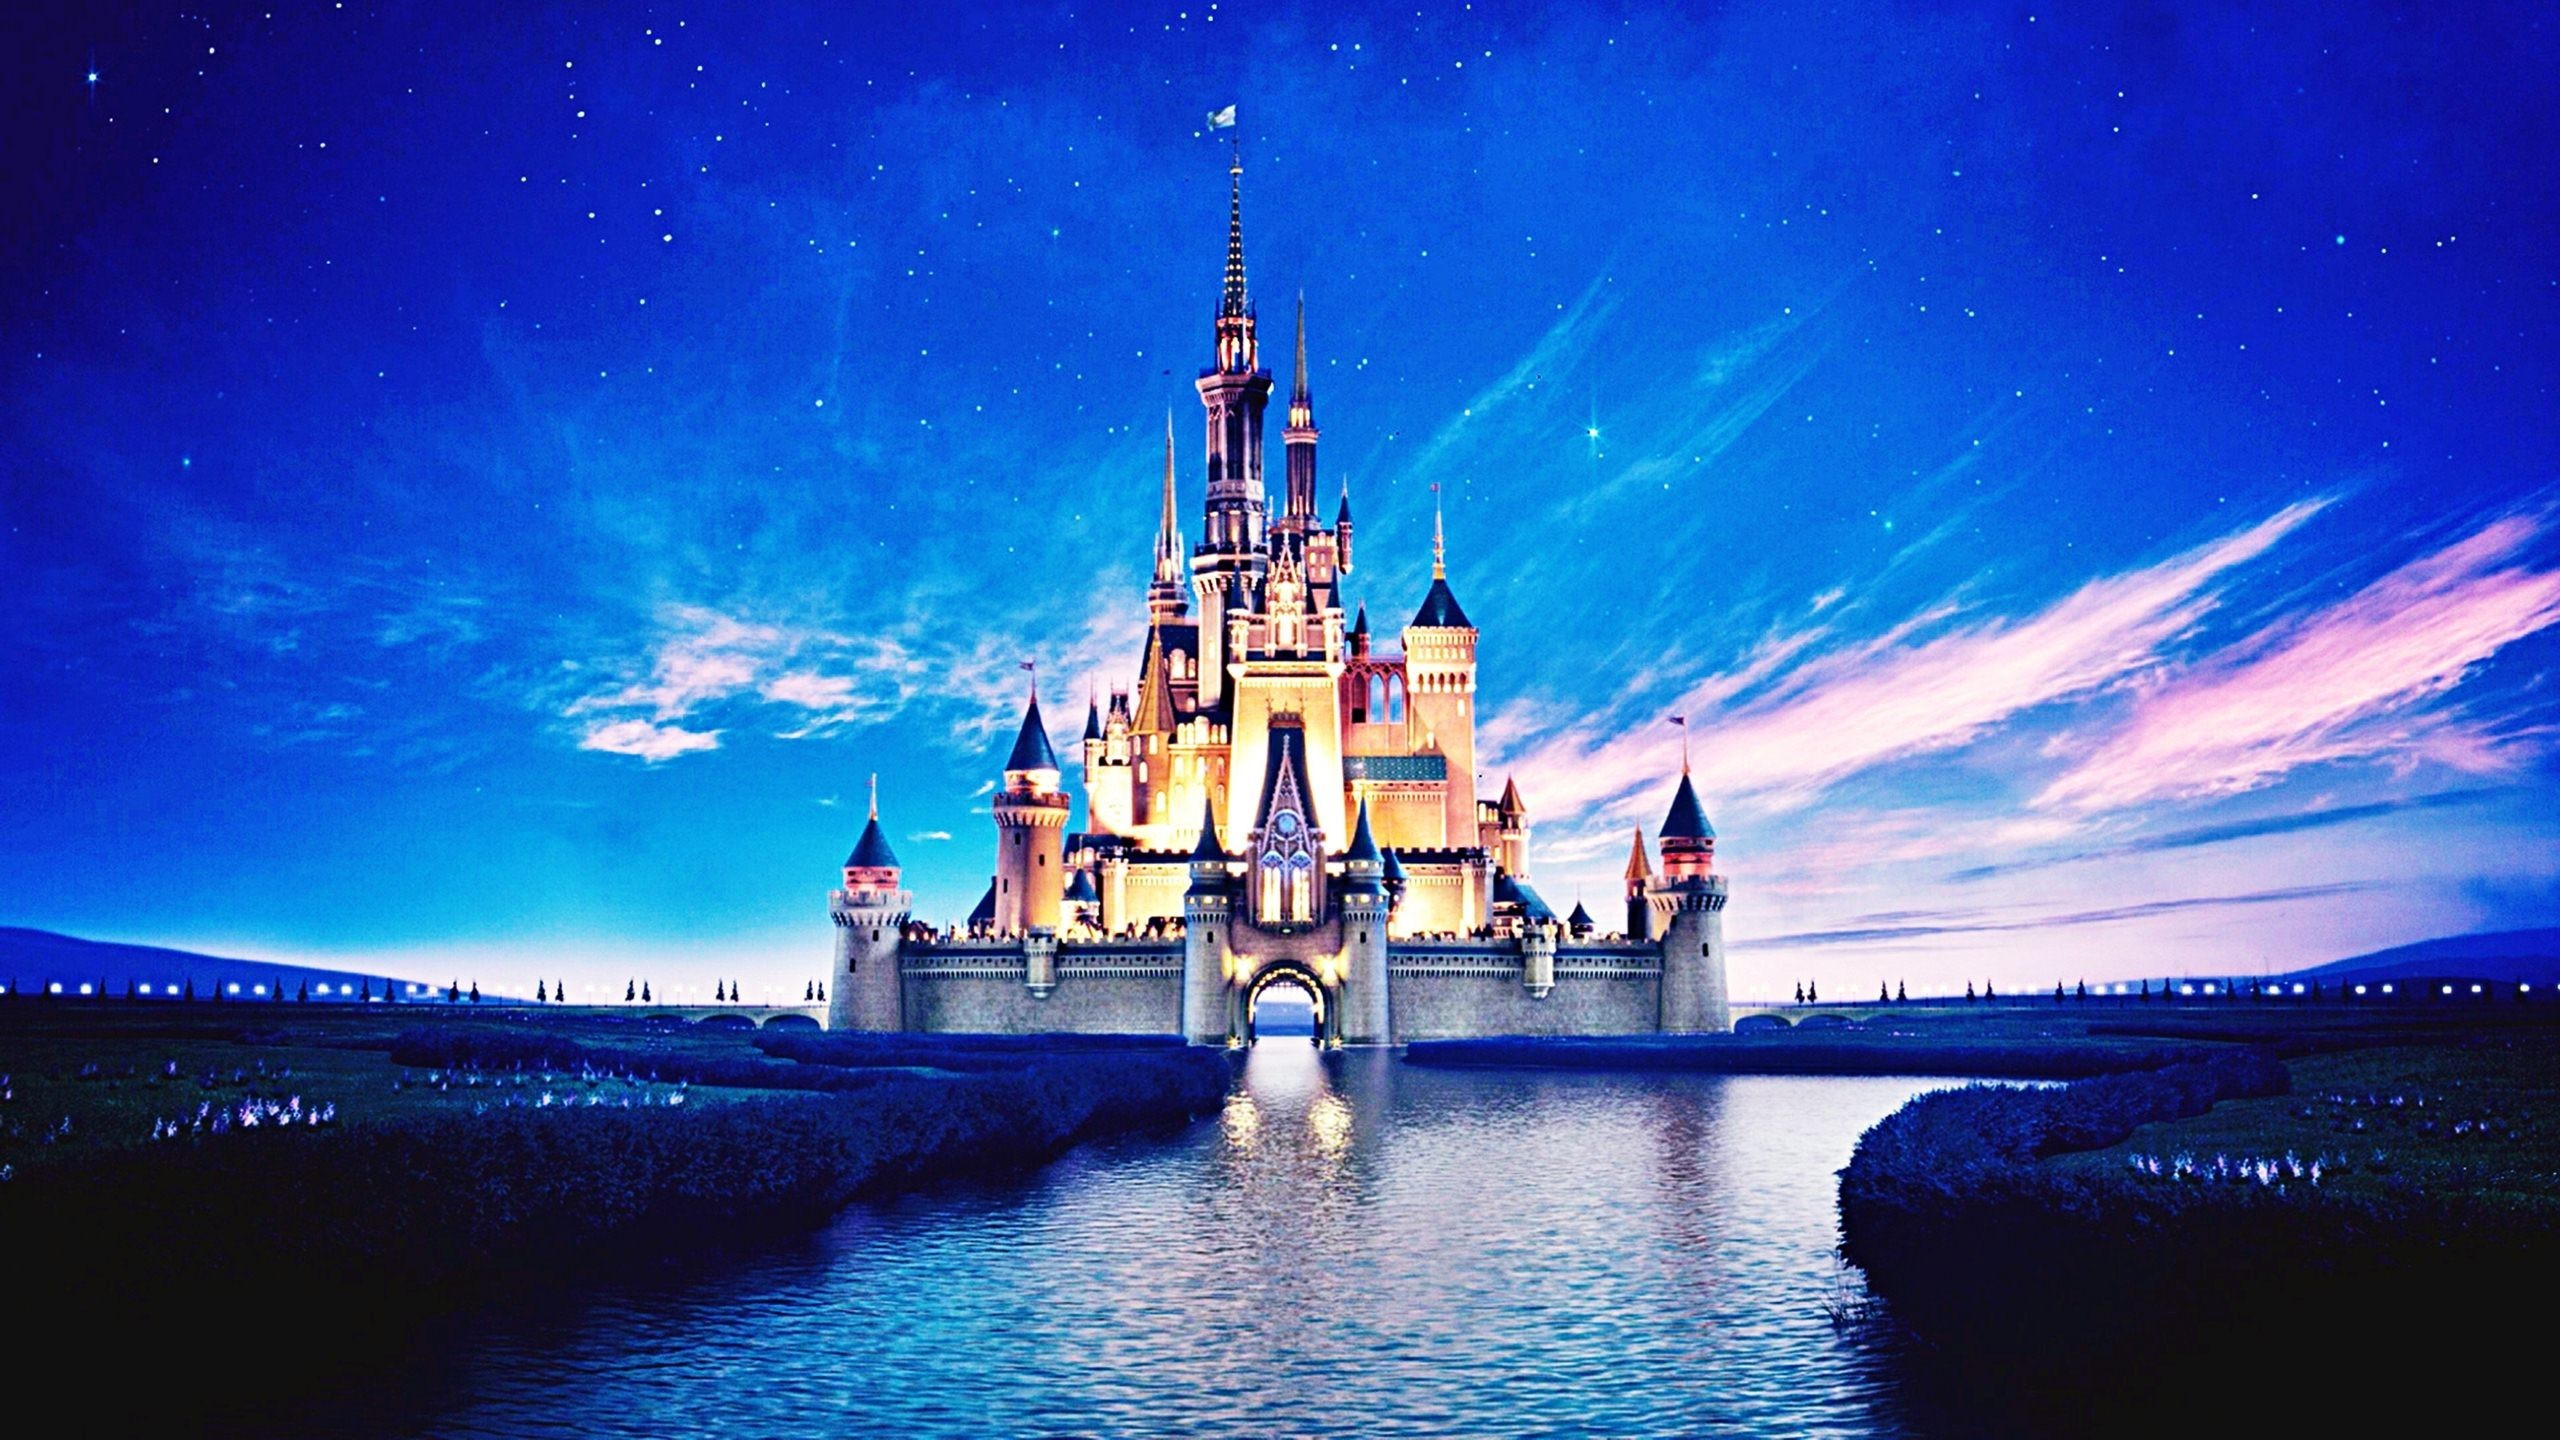 Res: 2560x1440, Awesome Disney Castle Wallpaper High Quality Backgrounds Hd Images Art For  Laptop